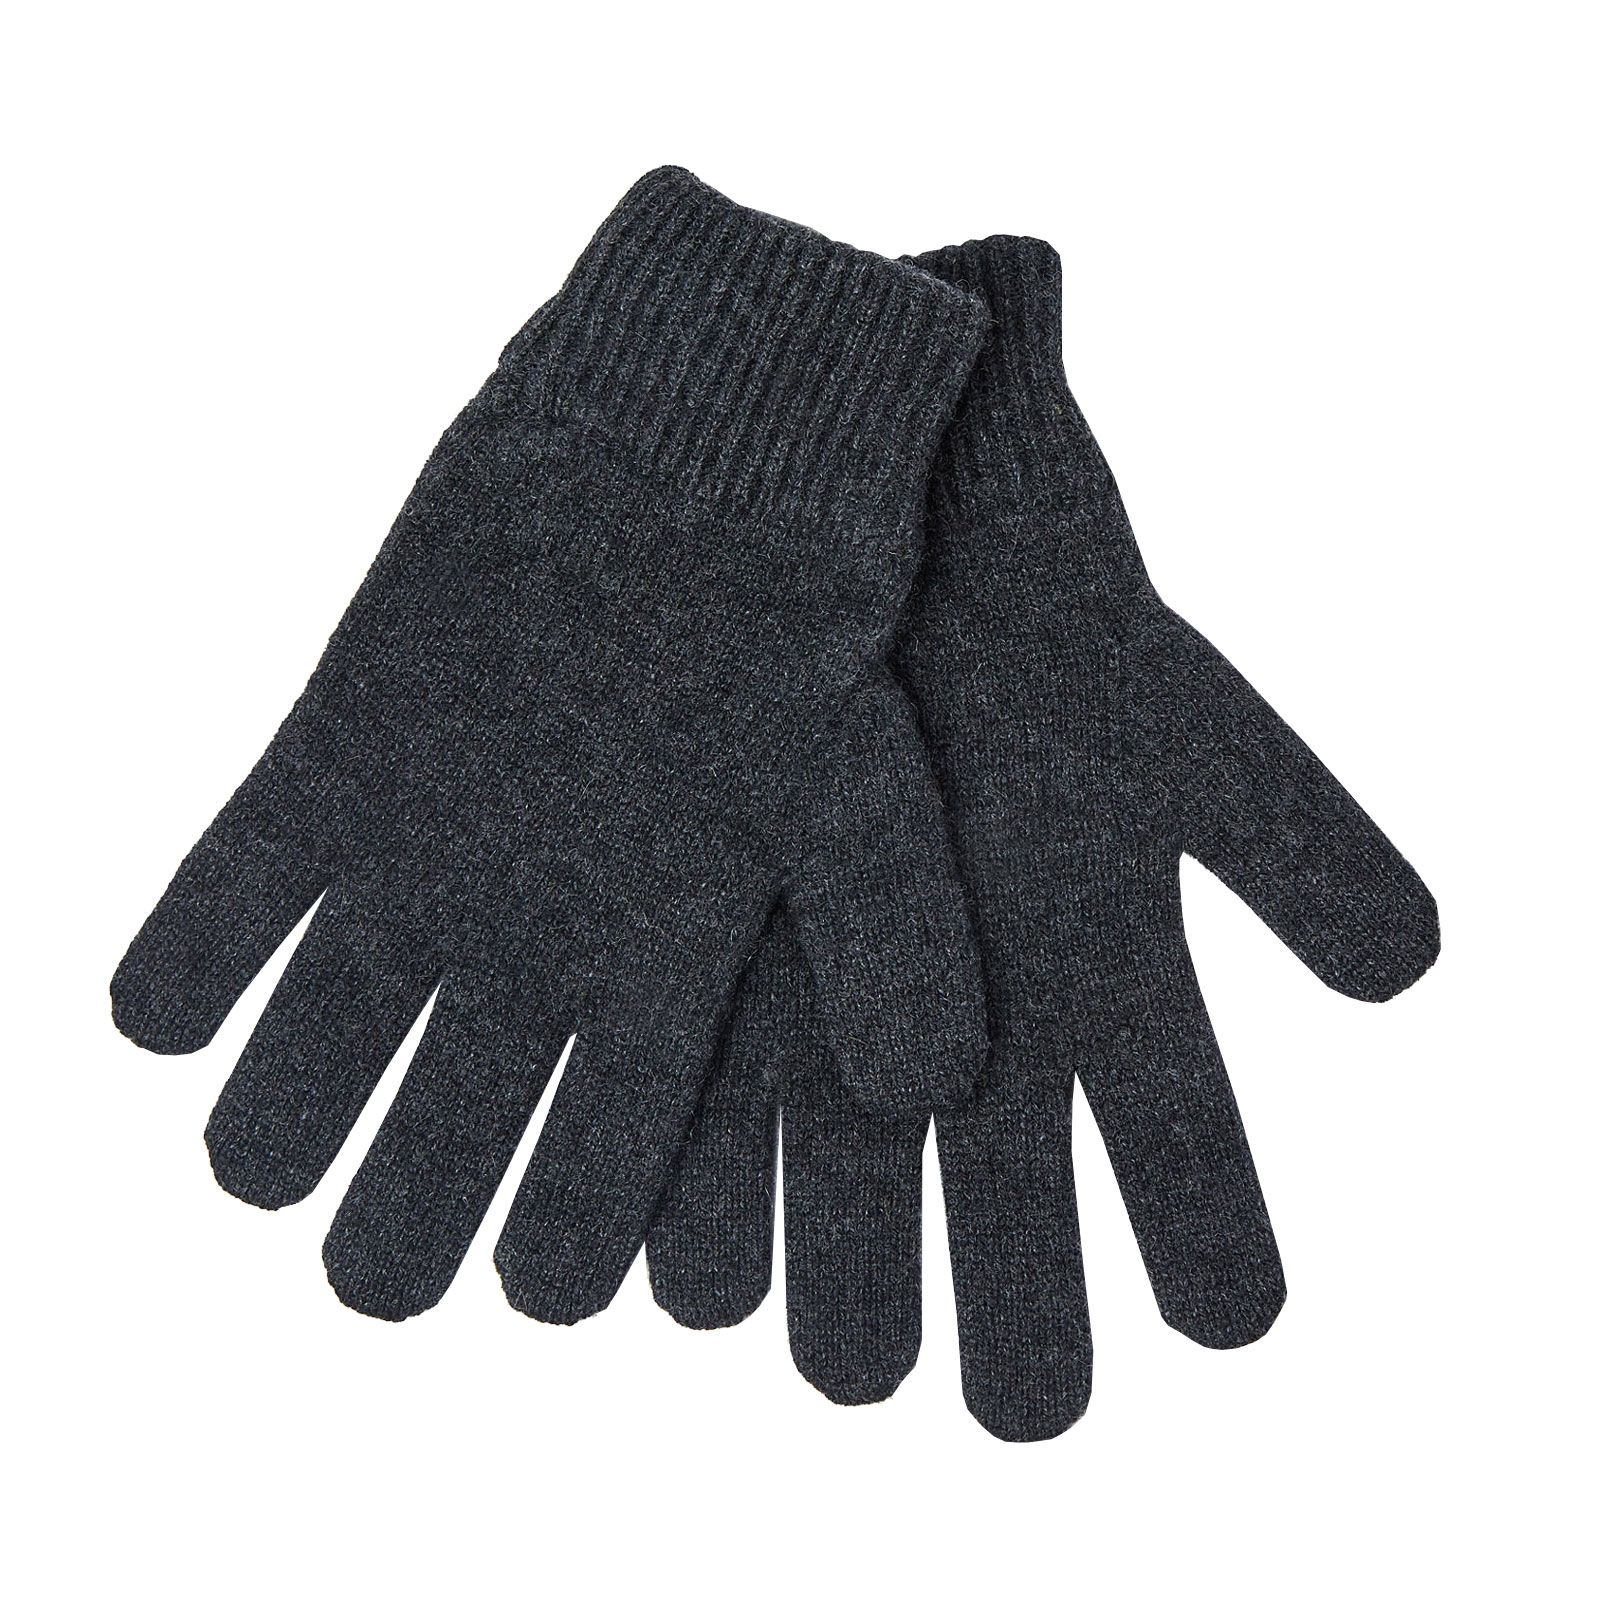 John Lewis Made in Italy Cashmere Gloves